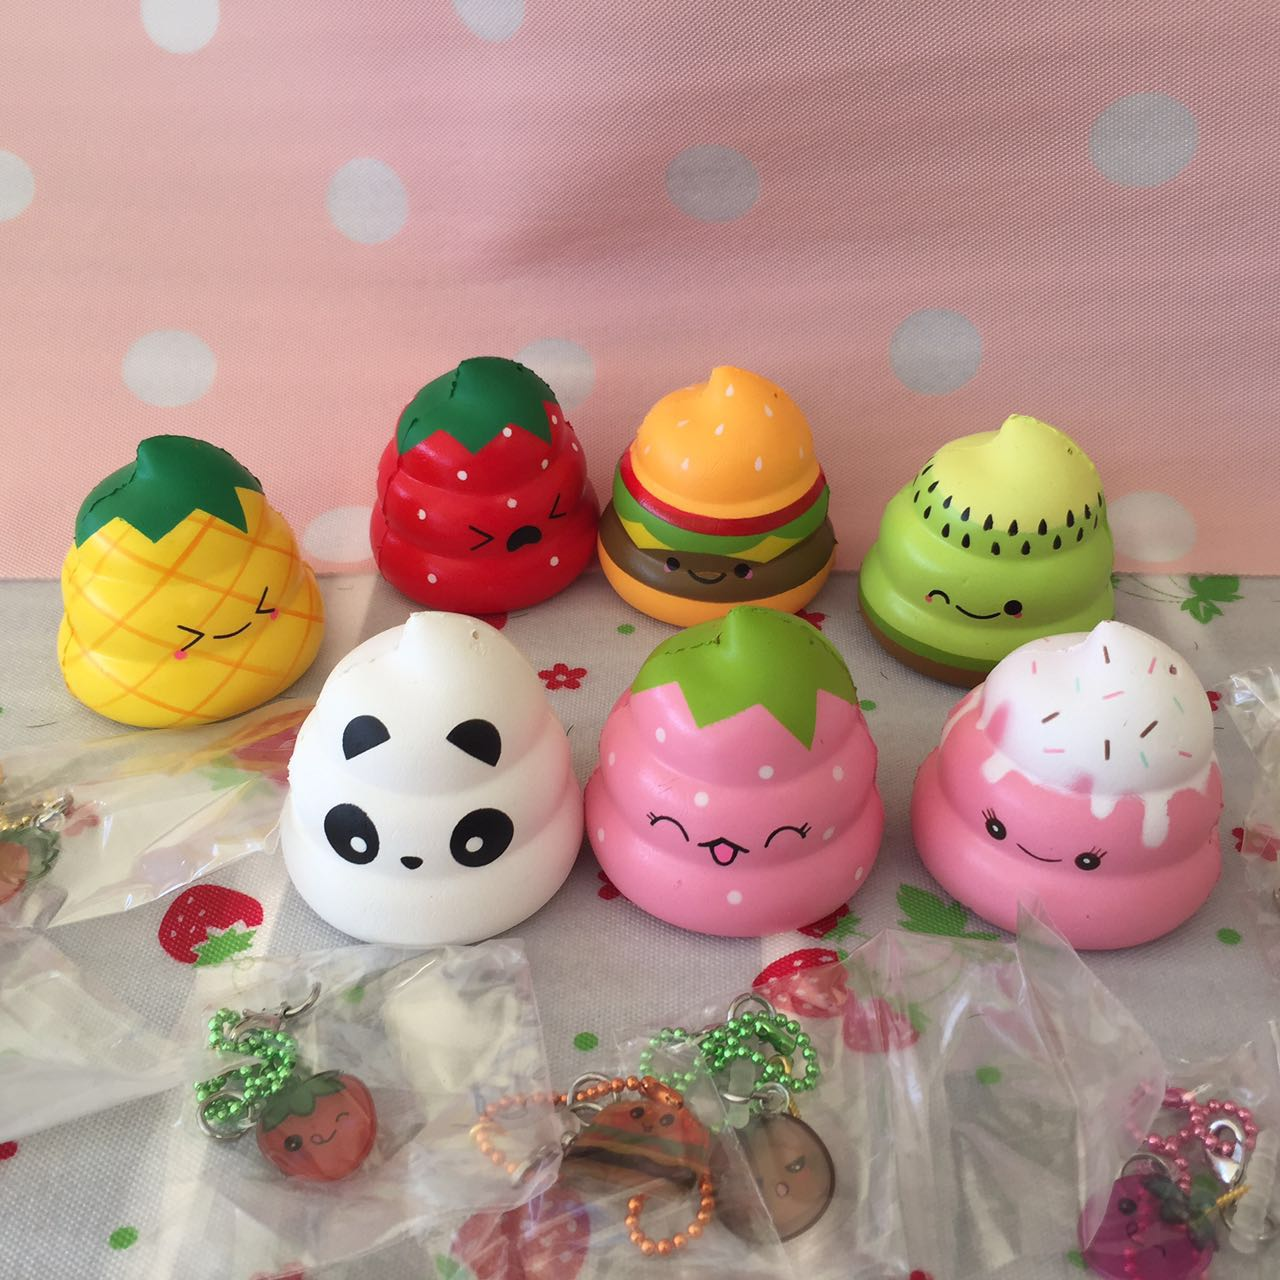 Puni Maru super crazy scented poo series 2!